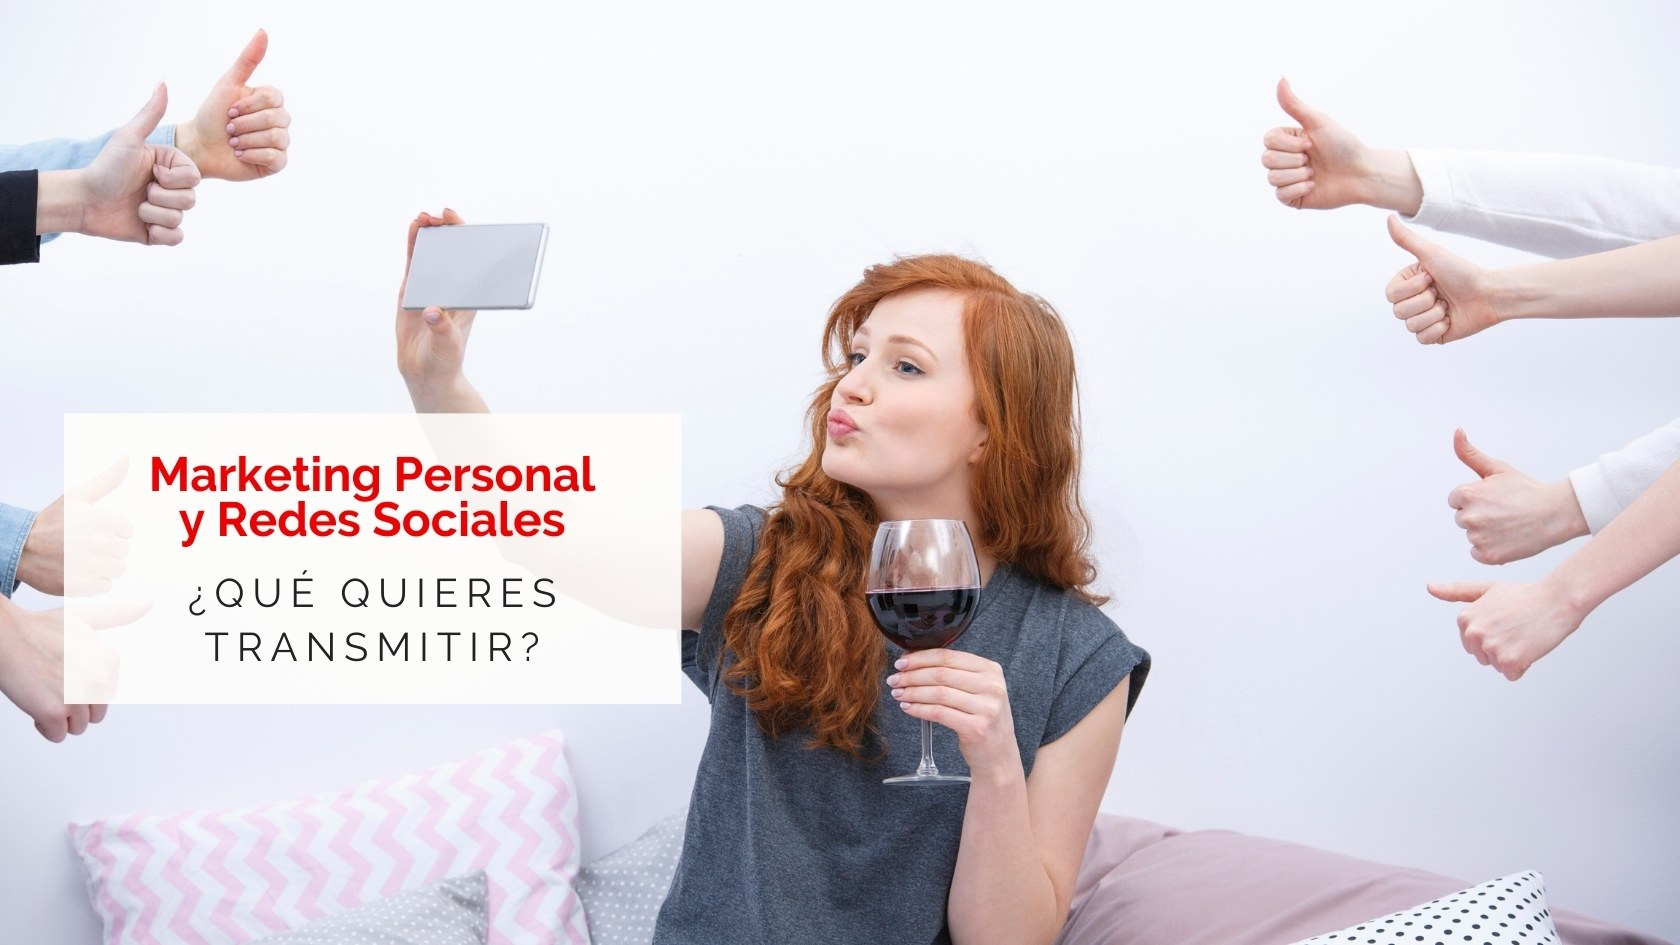 Hector Jimenez - Marketing Personal y Redes Sociales - 1